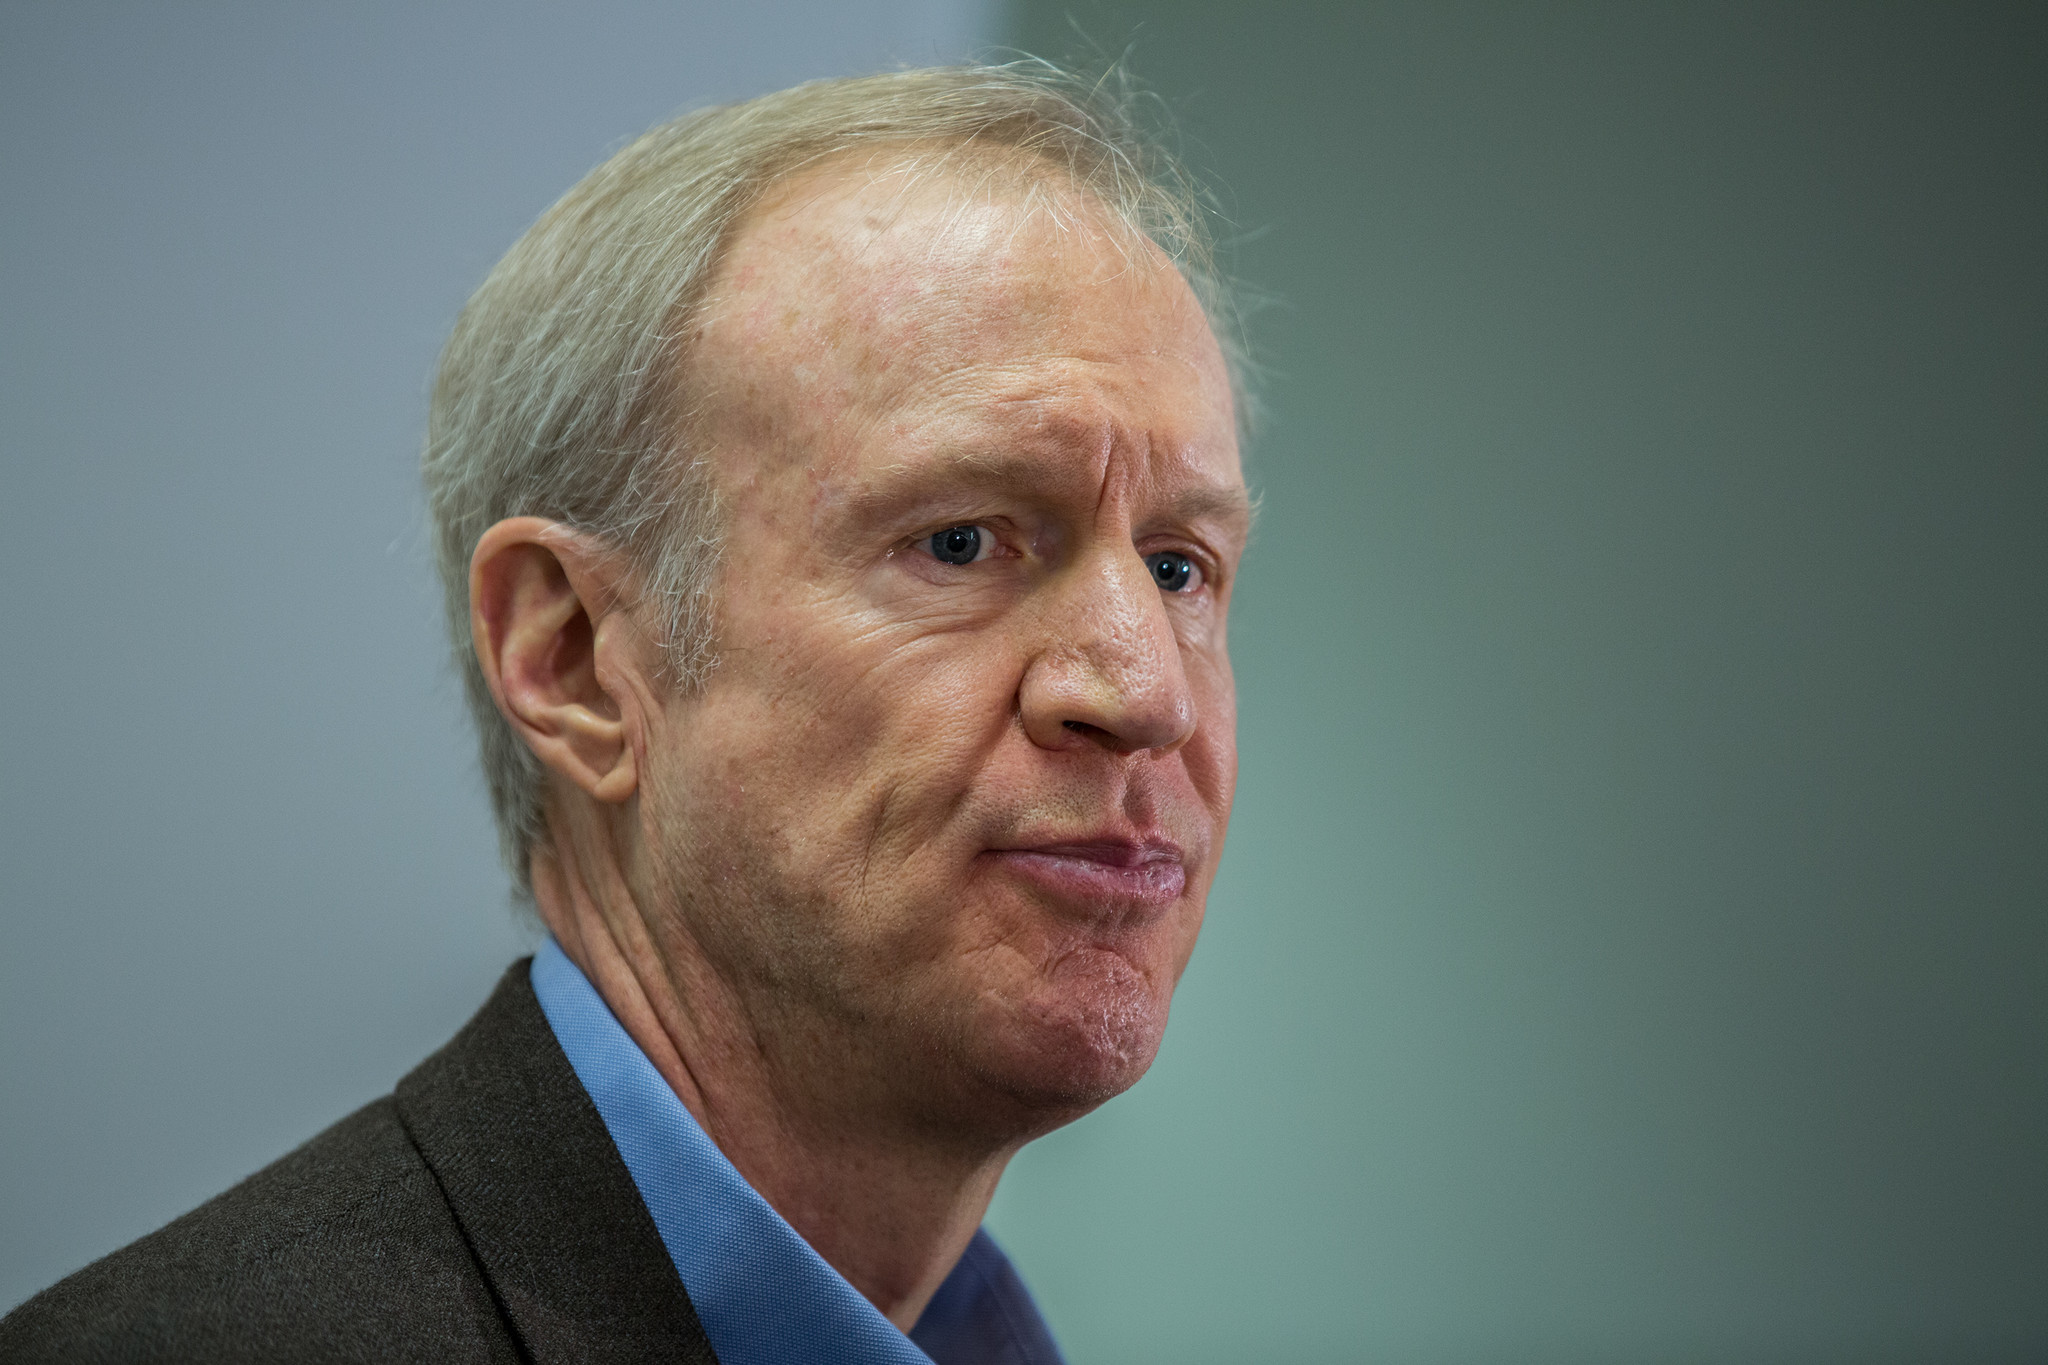 Lawyers for Rauner, union make case on contract dispute - Chicago Tribune Lawyers for Rauner, union make case on contract dispute - 웹